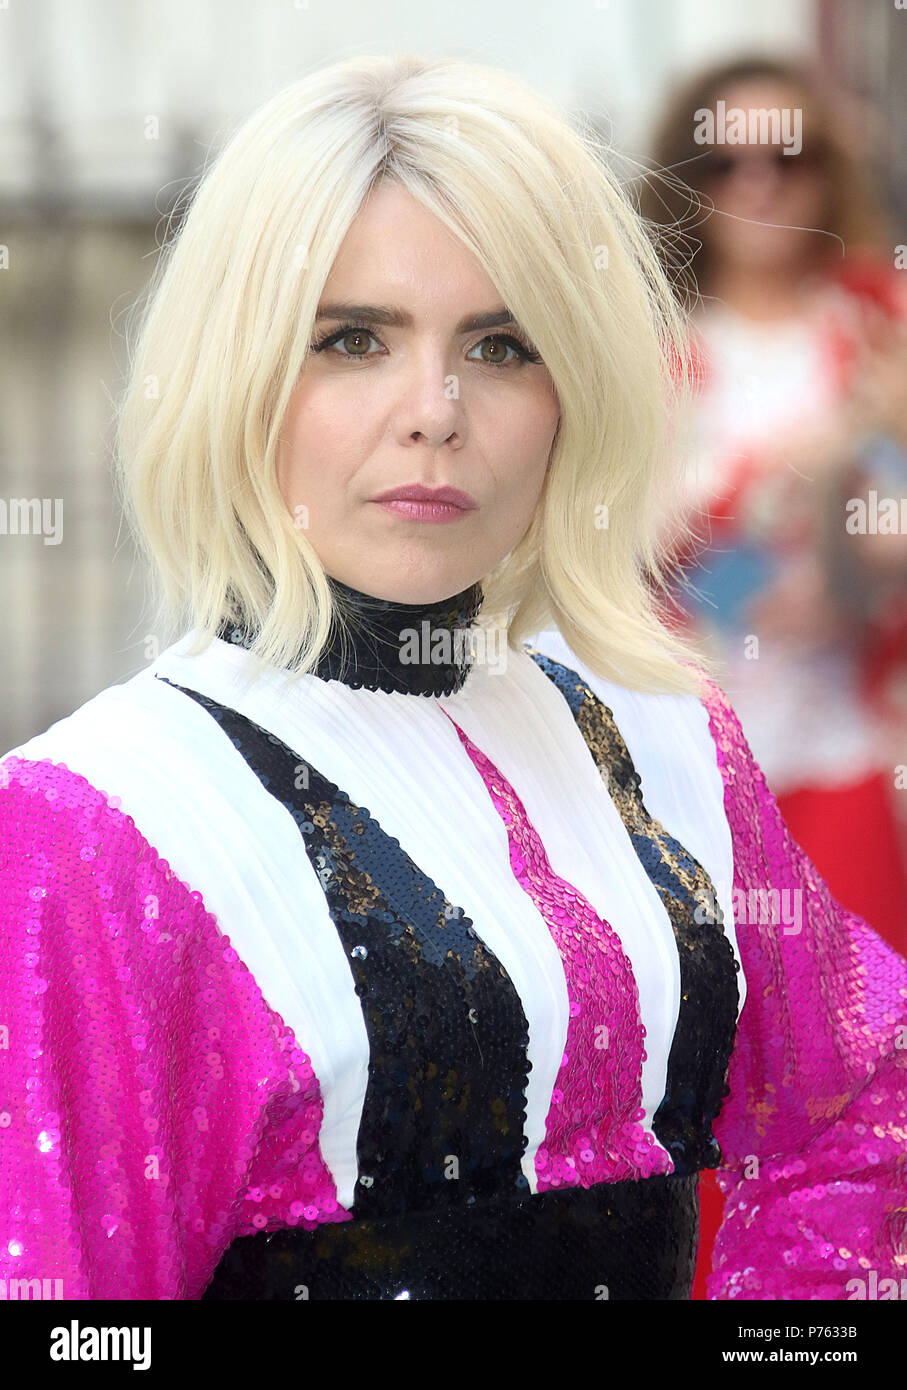 Jun 06, 2018 - Paloma Faith attending Royal Academy Of Arts 250th Summer Exhibition Preview Party at Burlington House in London, England, UK - Stock Image